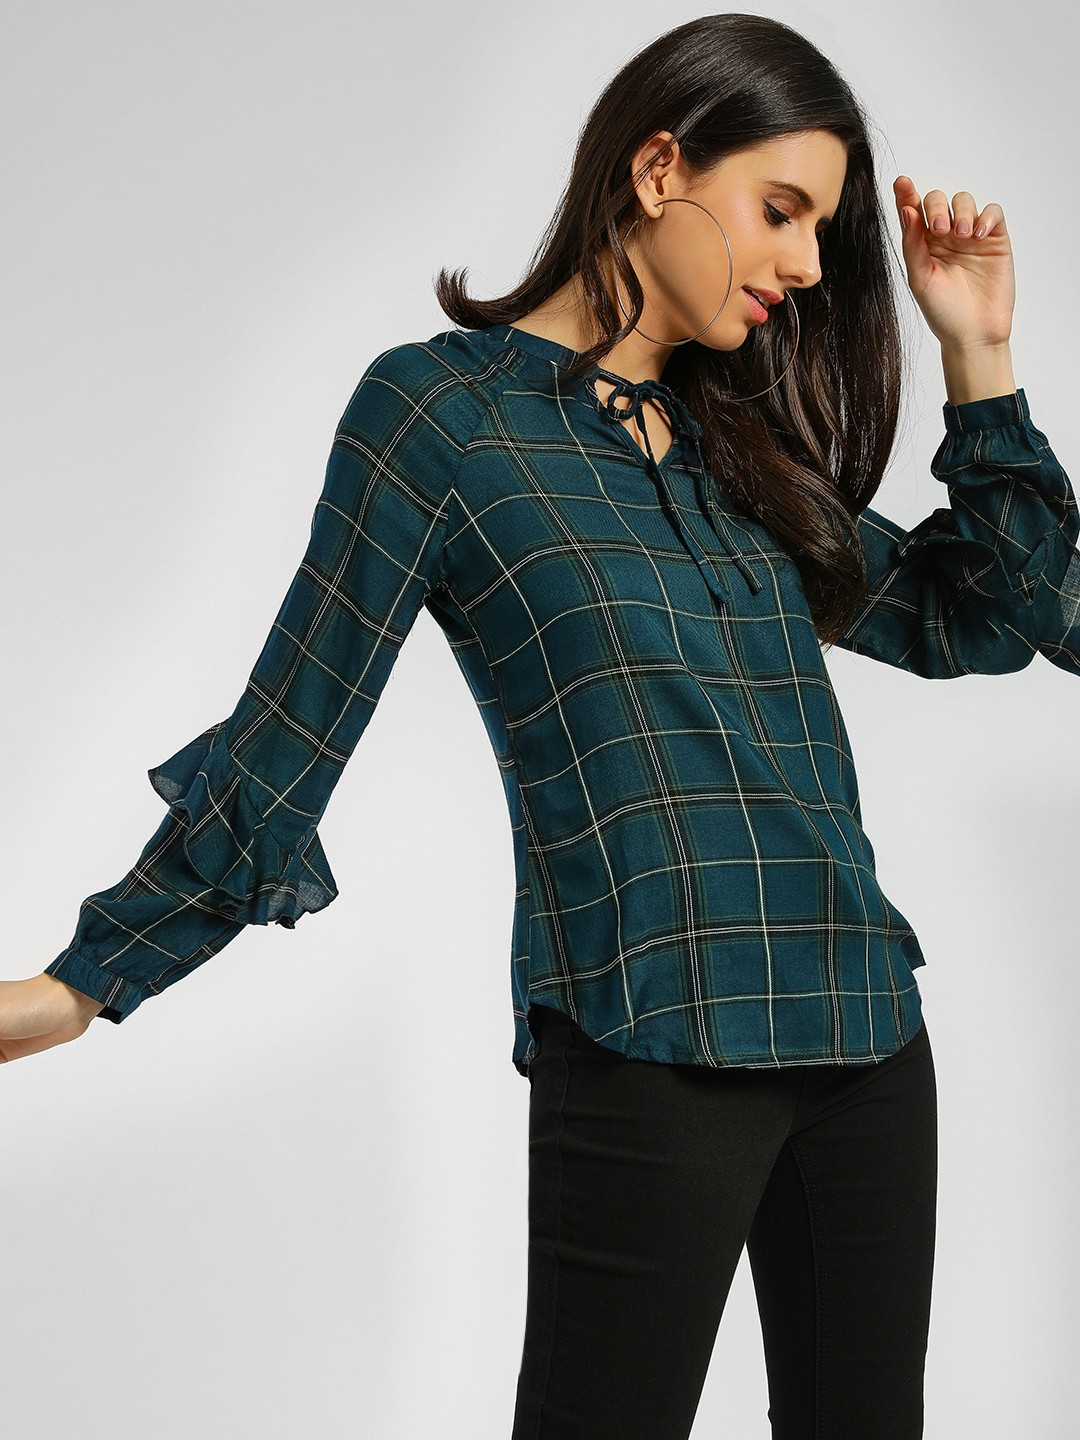 Lee Cooper Teal Tie Knot Checkered Top 1